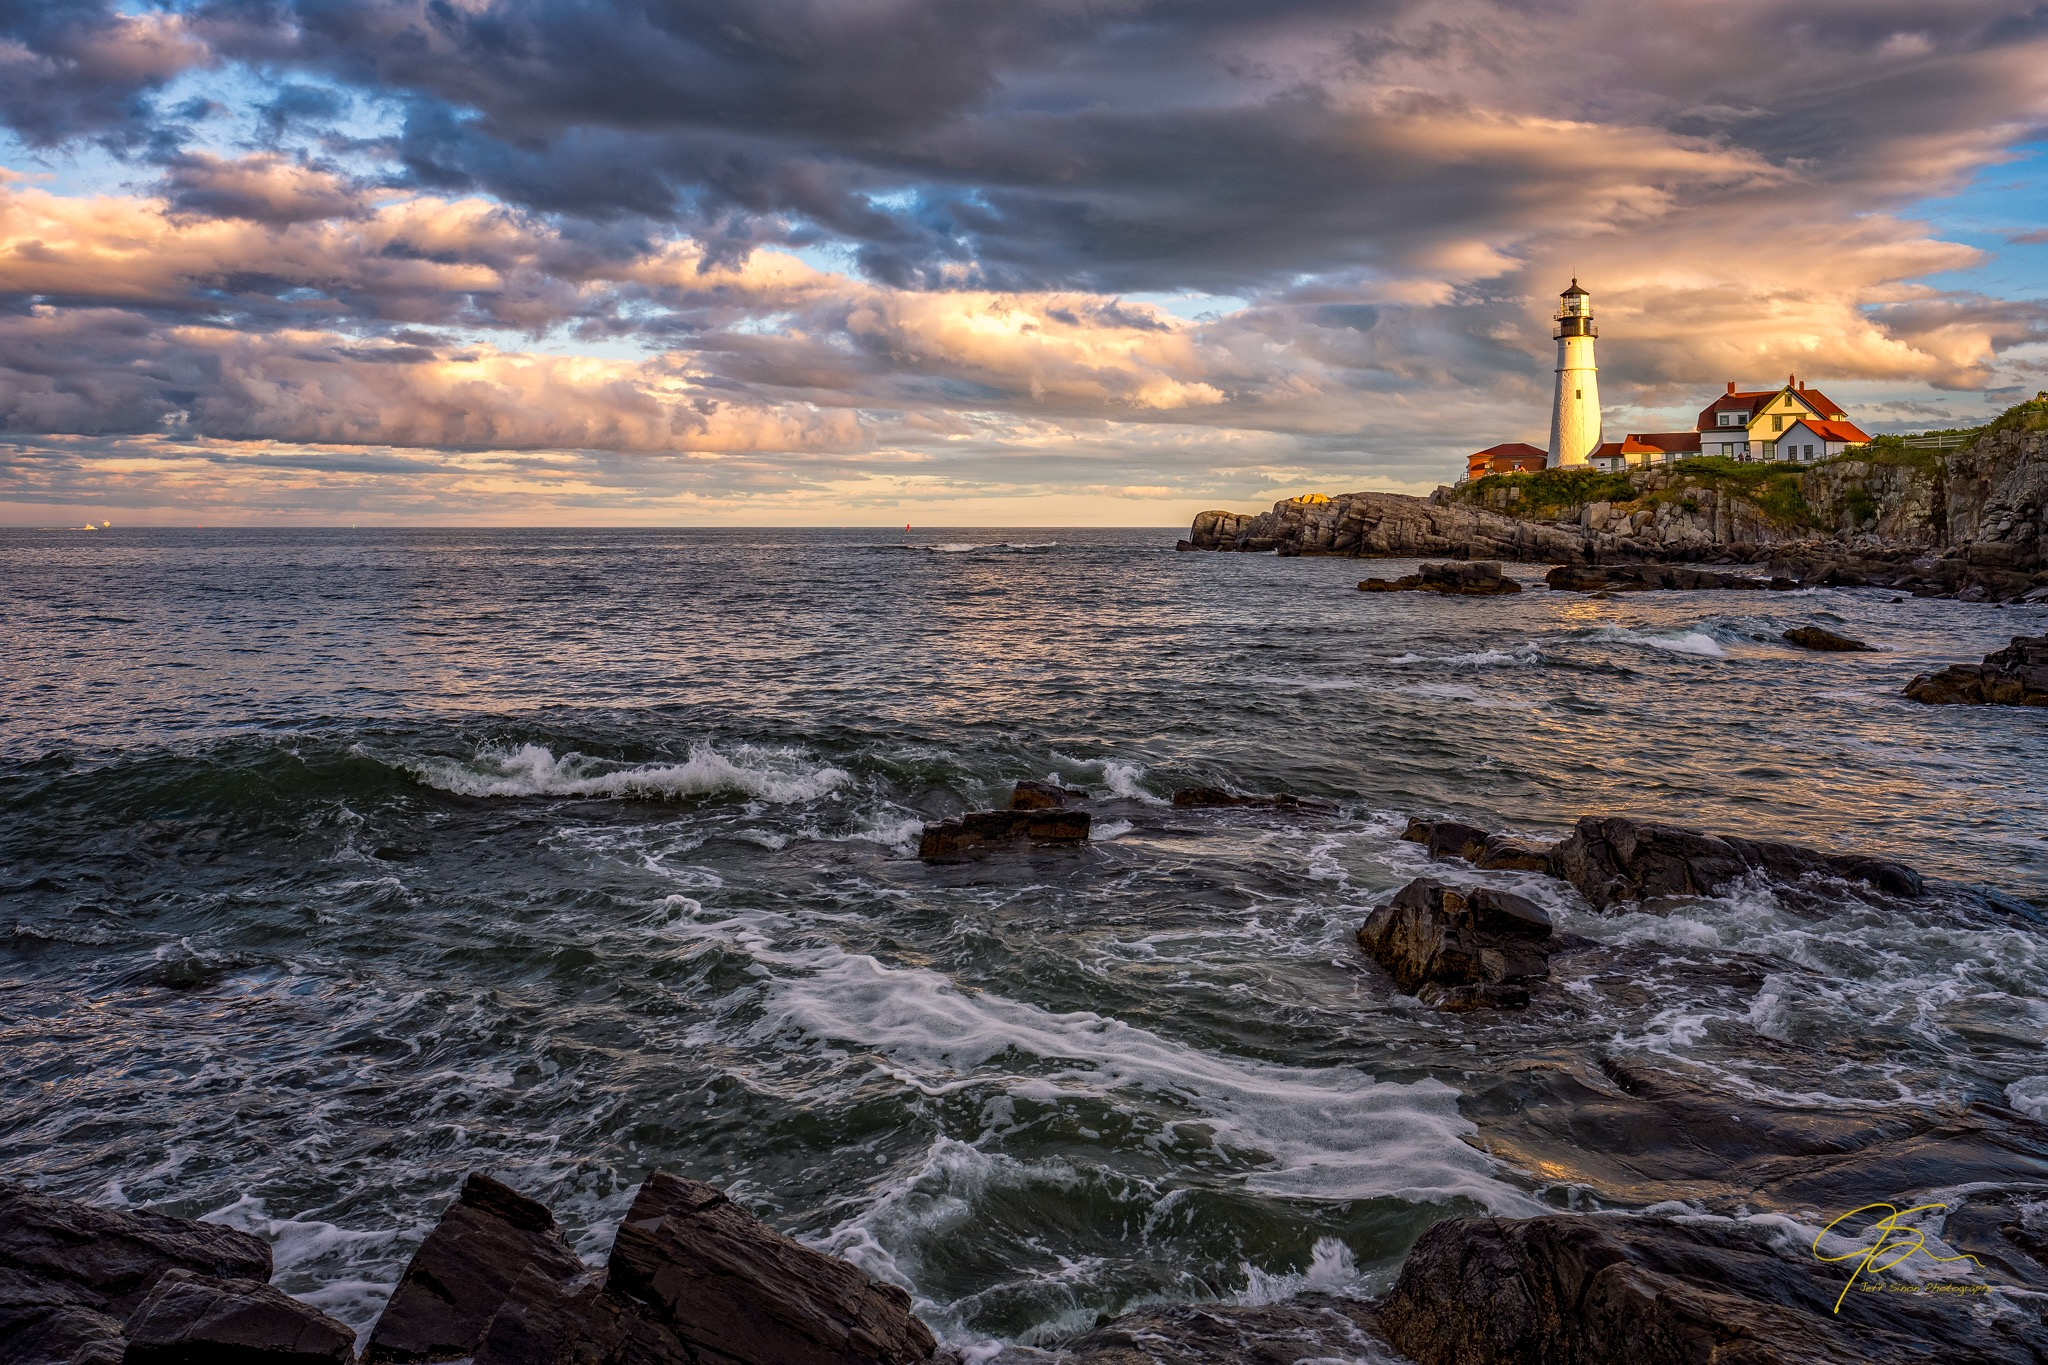 dramatic sky over Portland head light at sunset